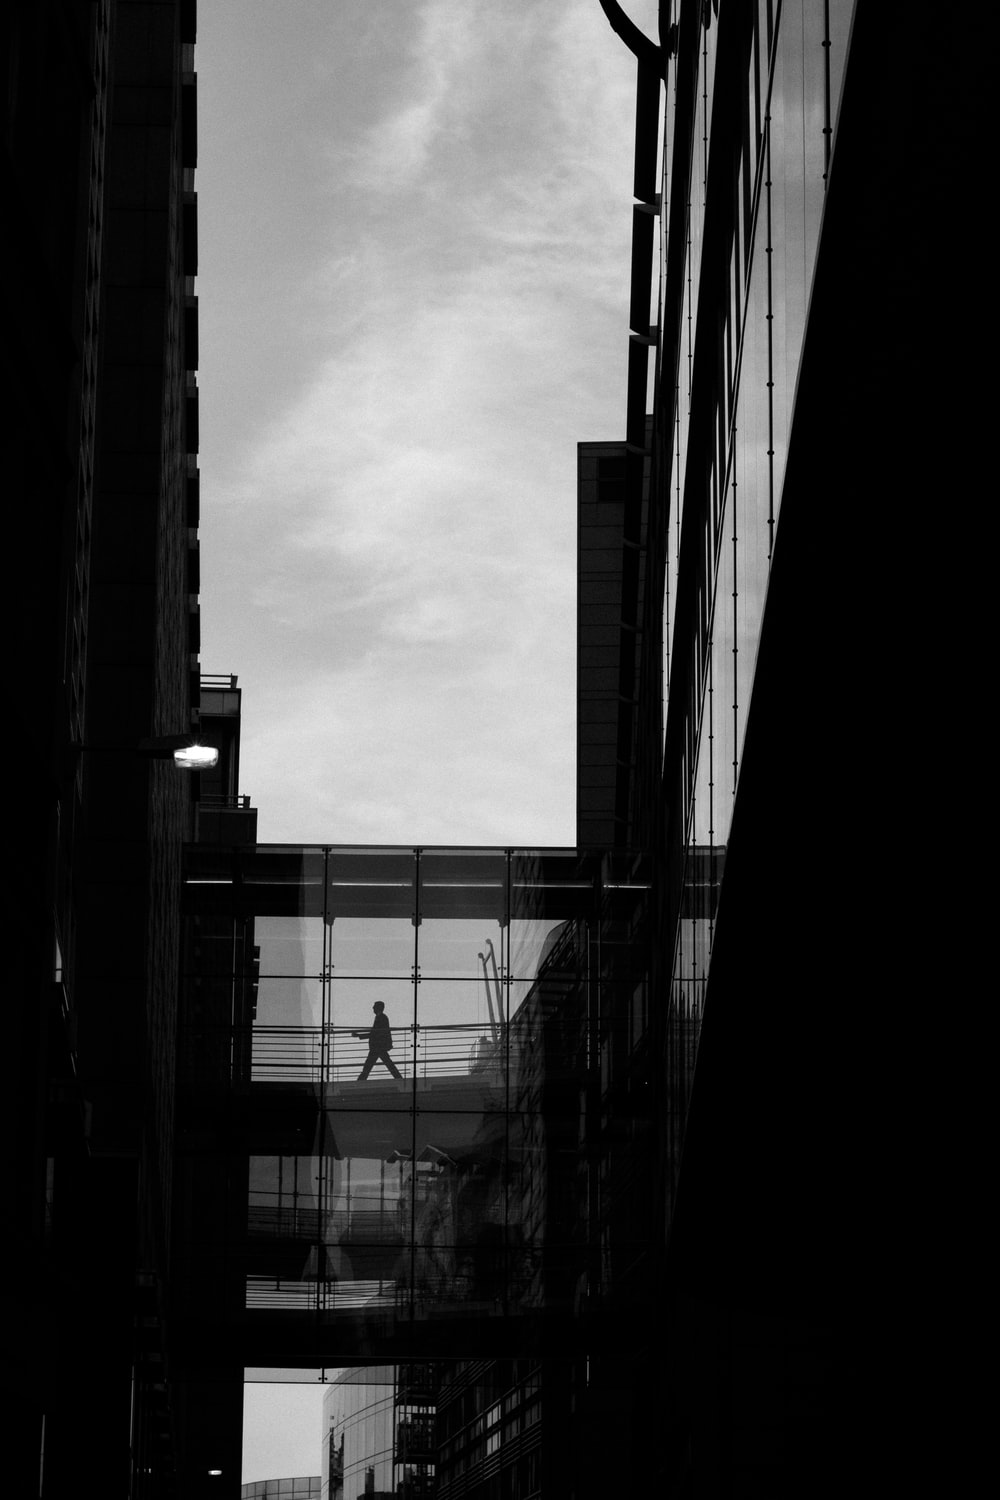 person walking on building